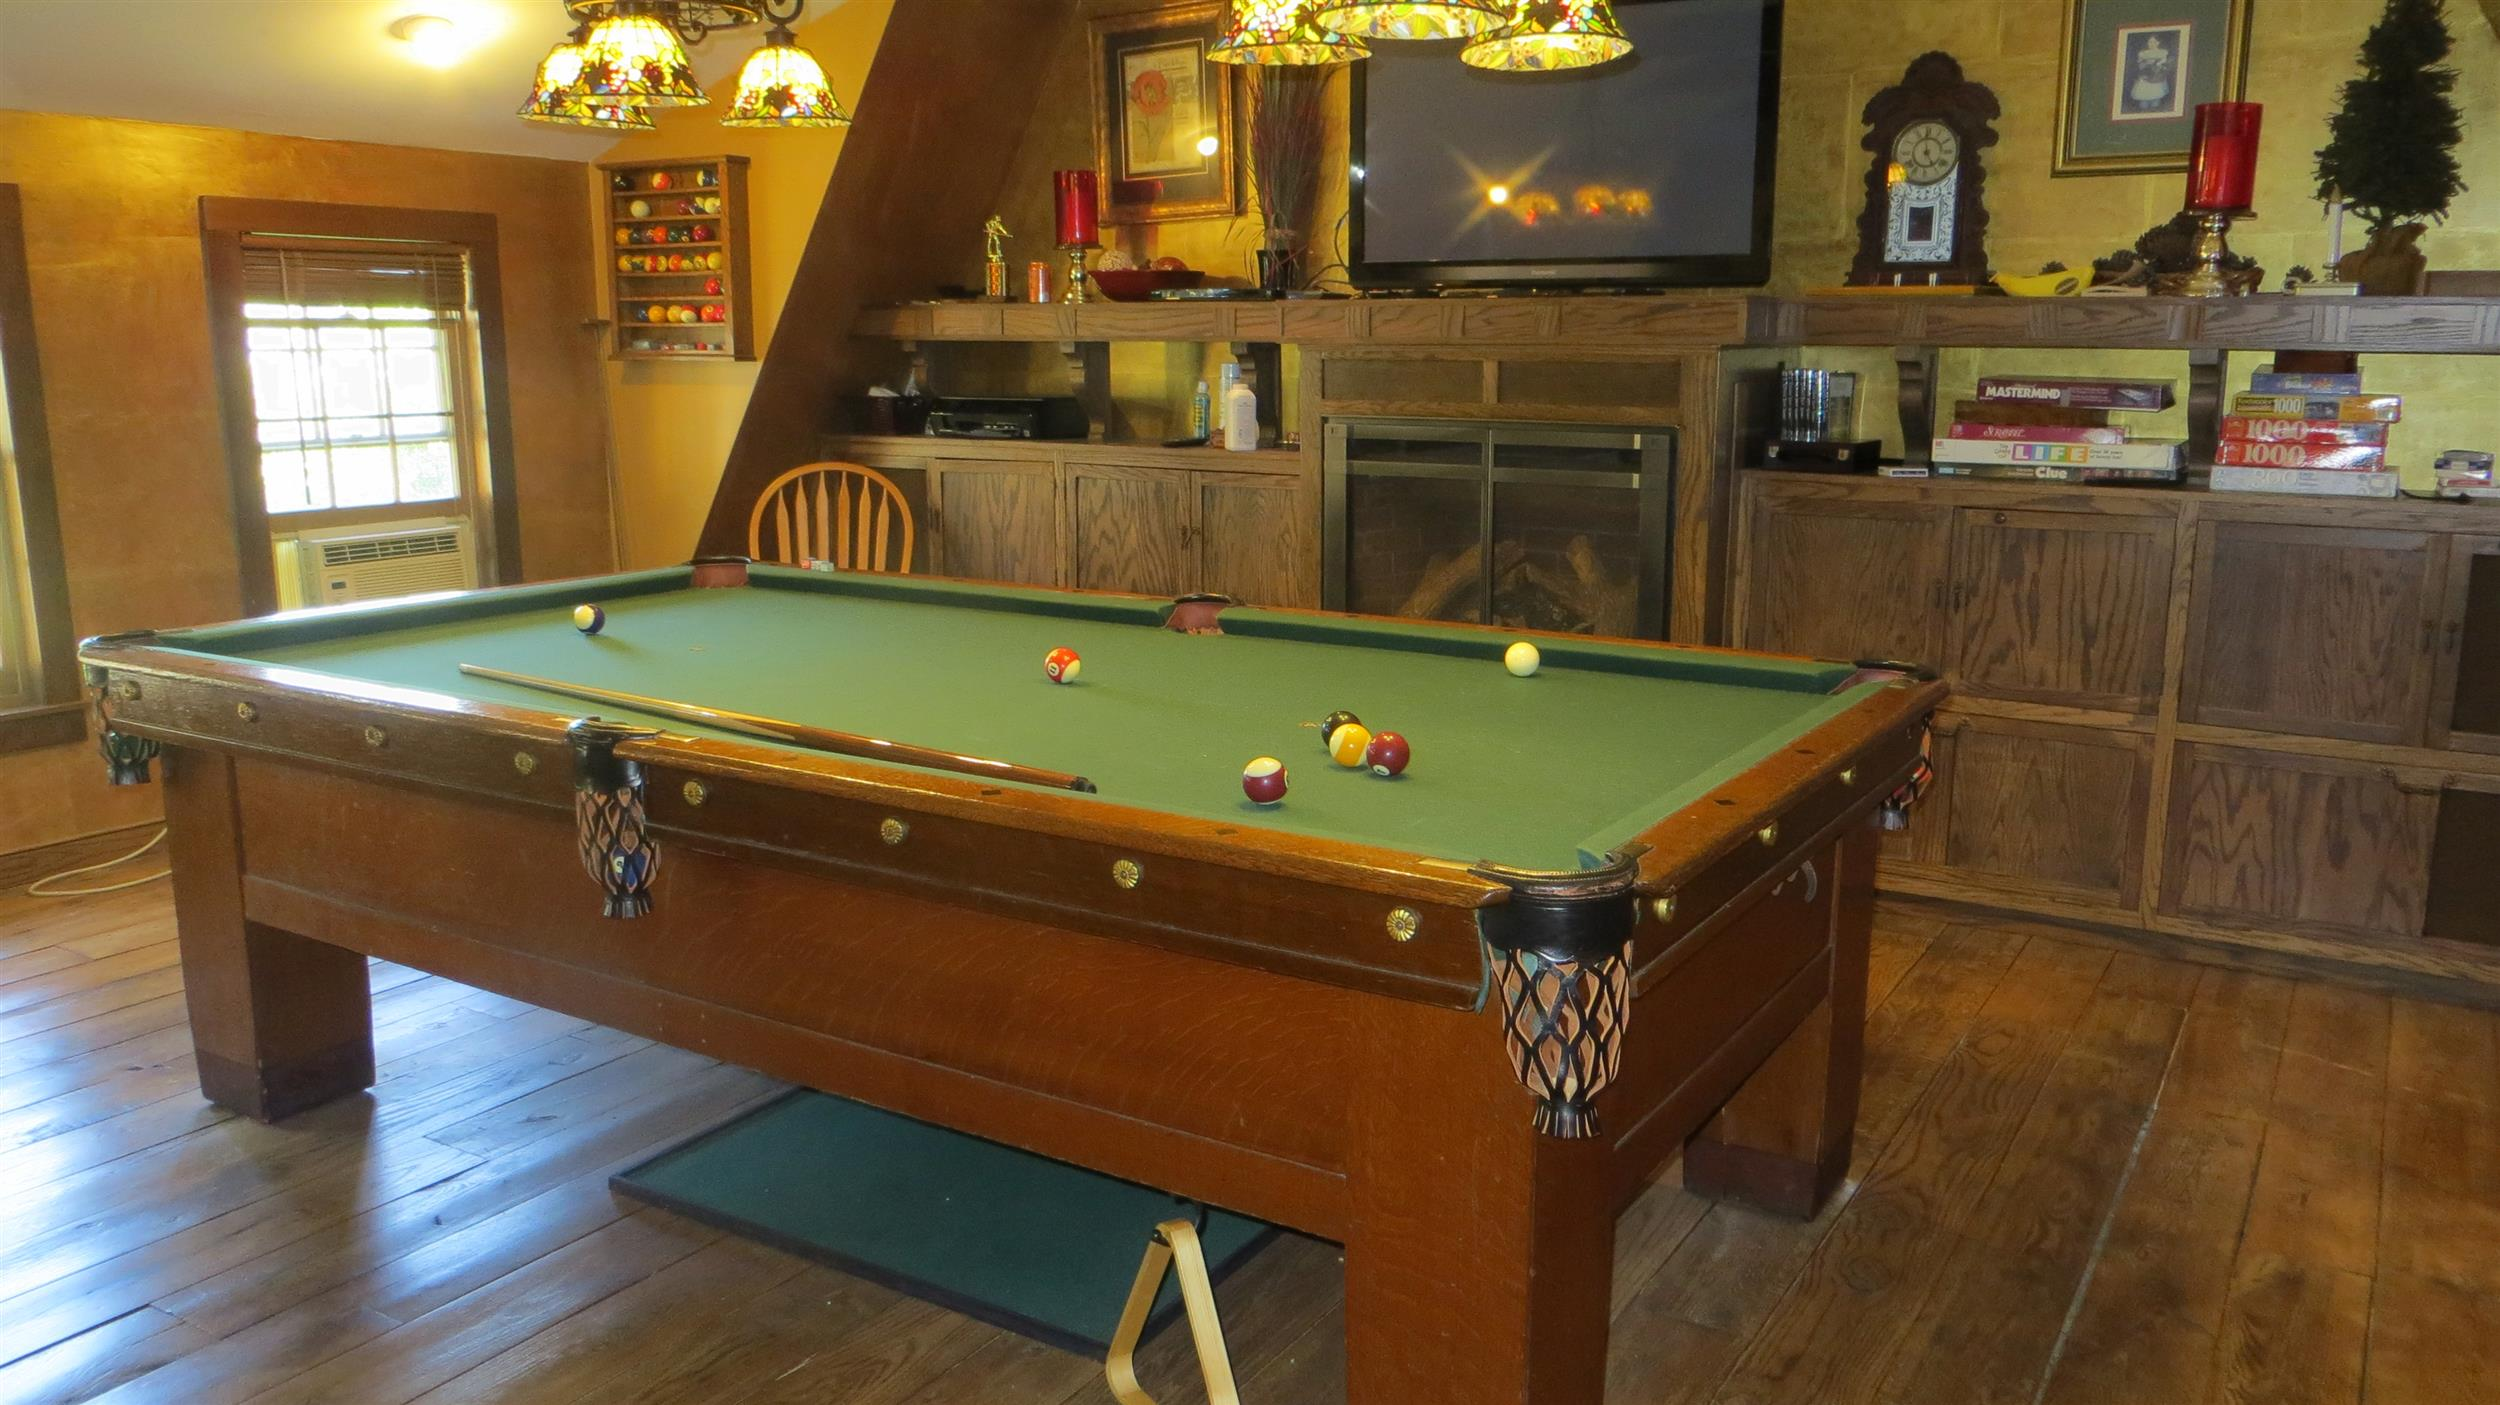 game-room-with-pool-table-and-fireplace.jpg